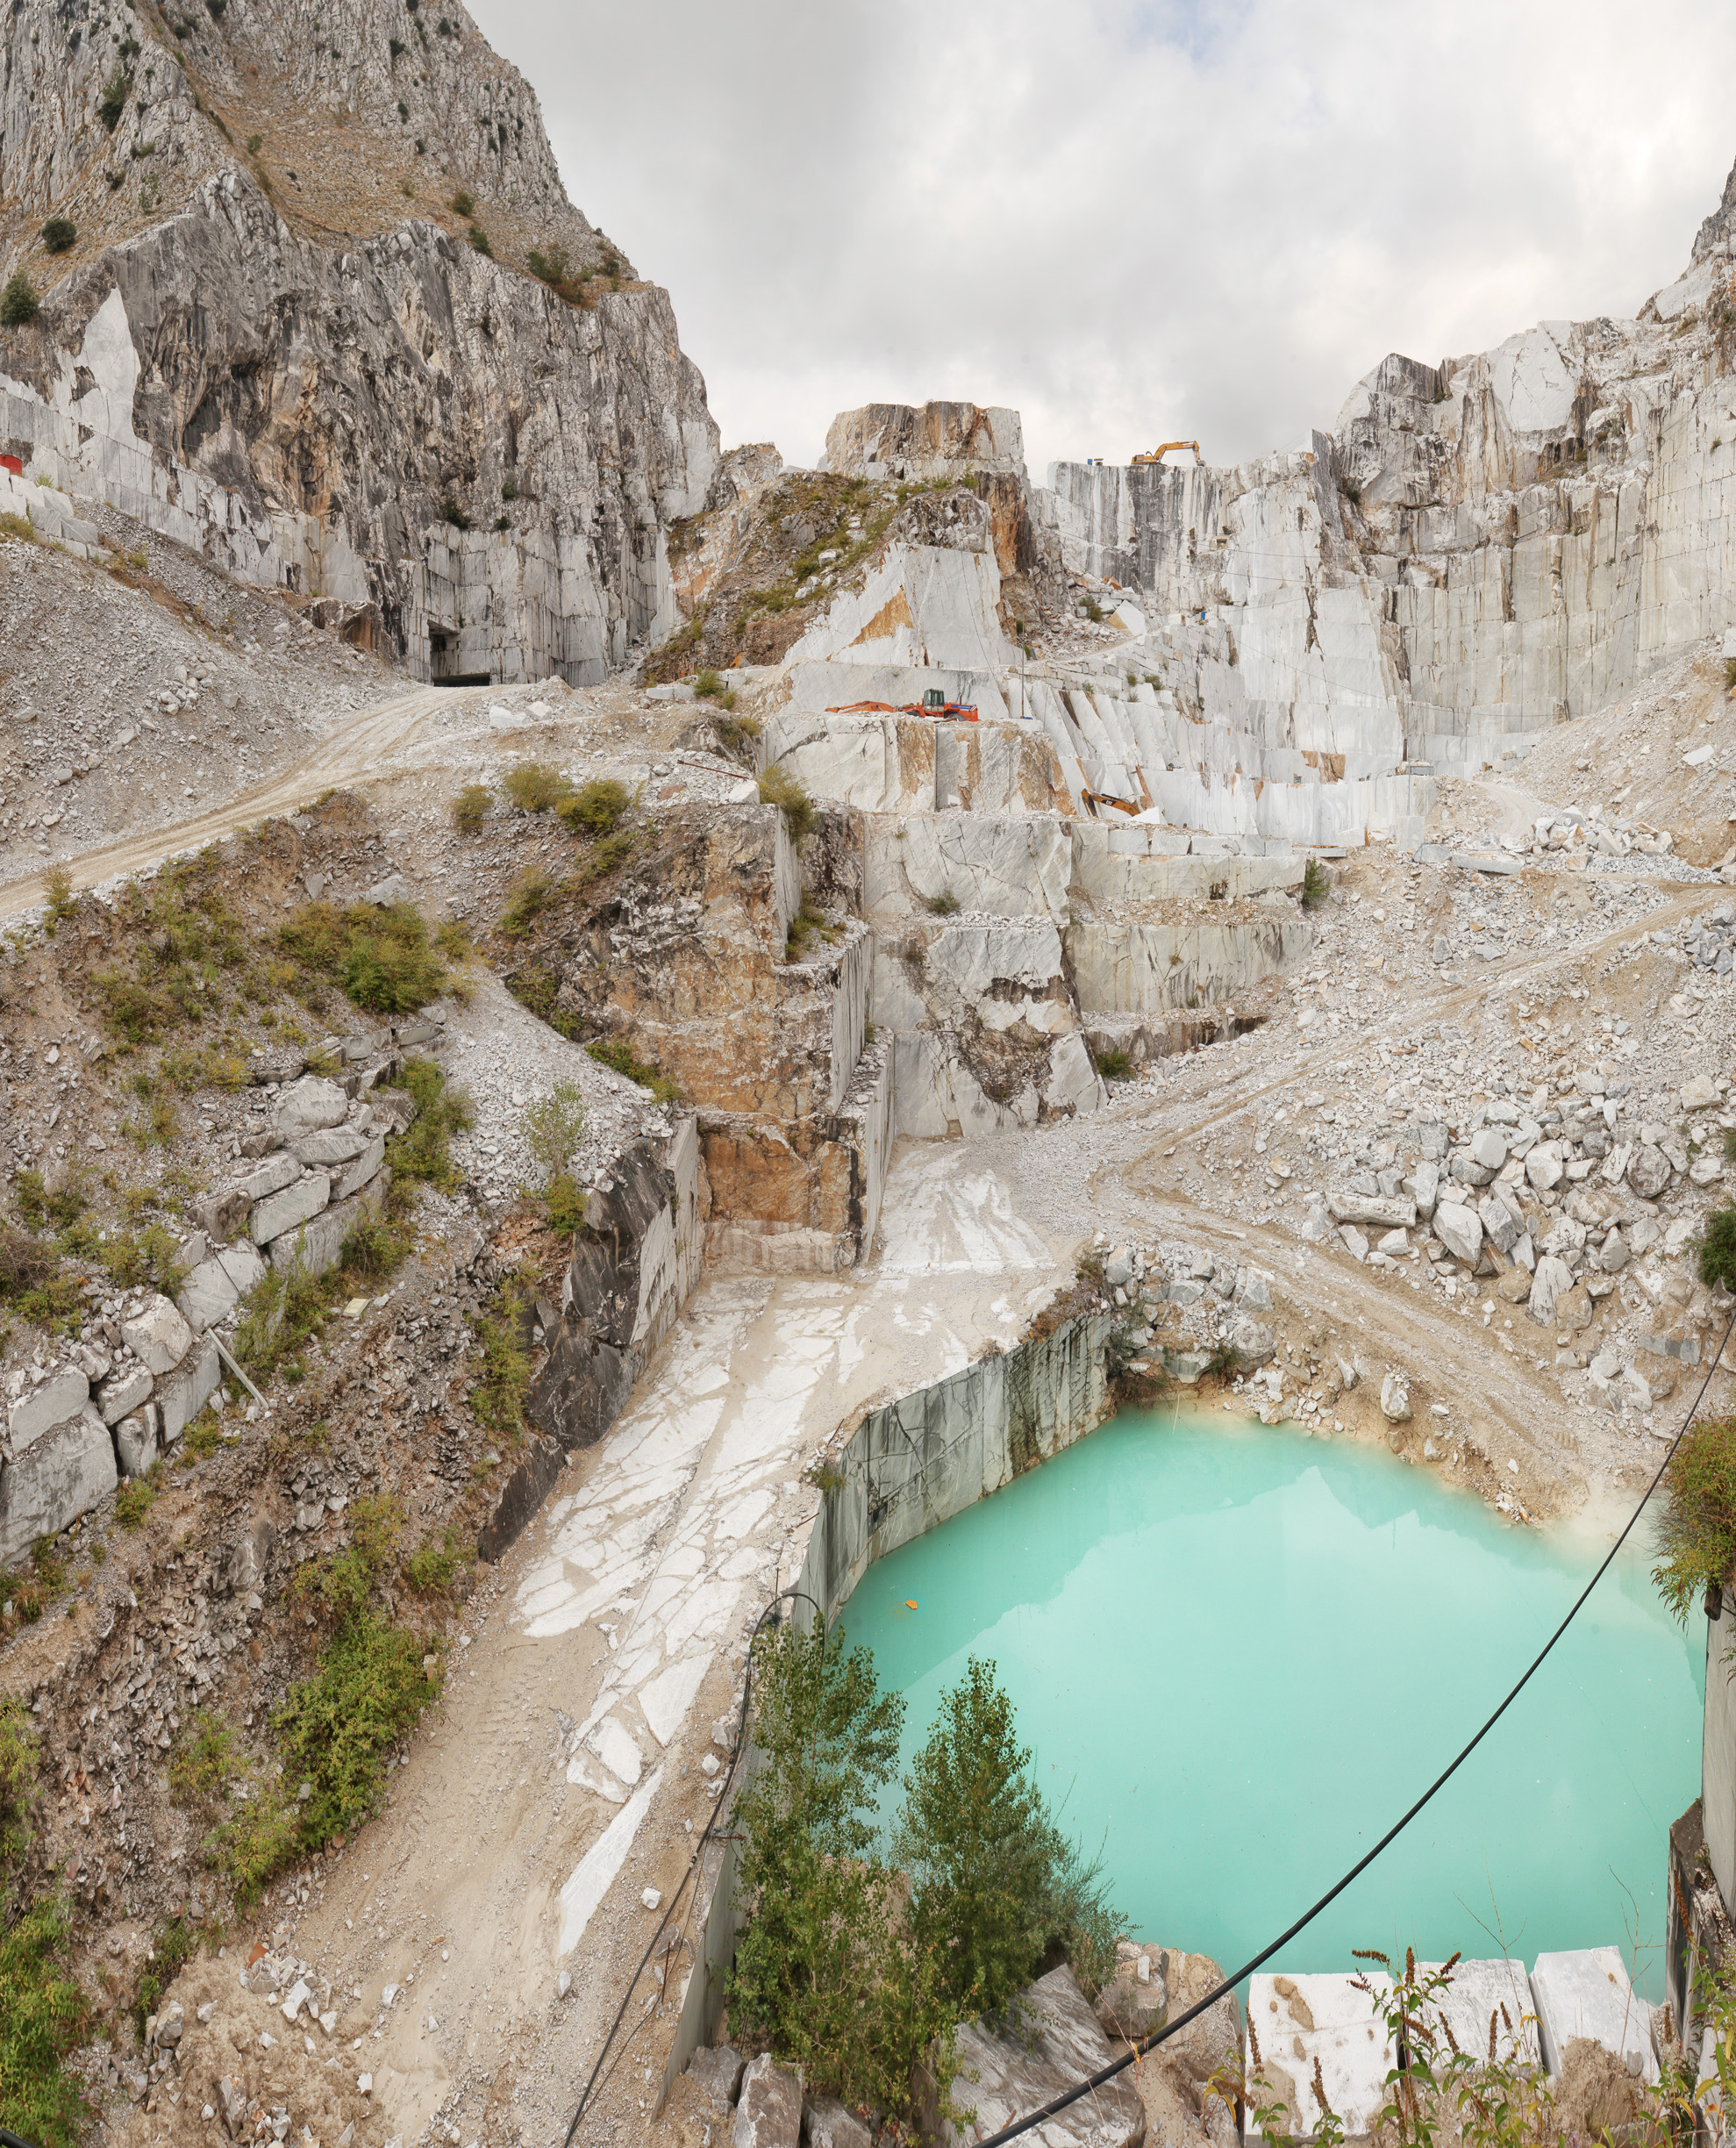 Lake II - Carrara, Italy 2015